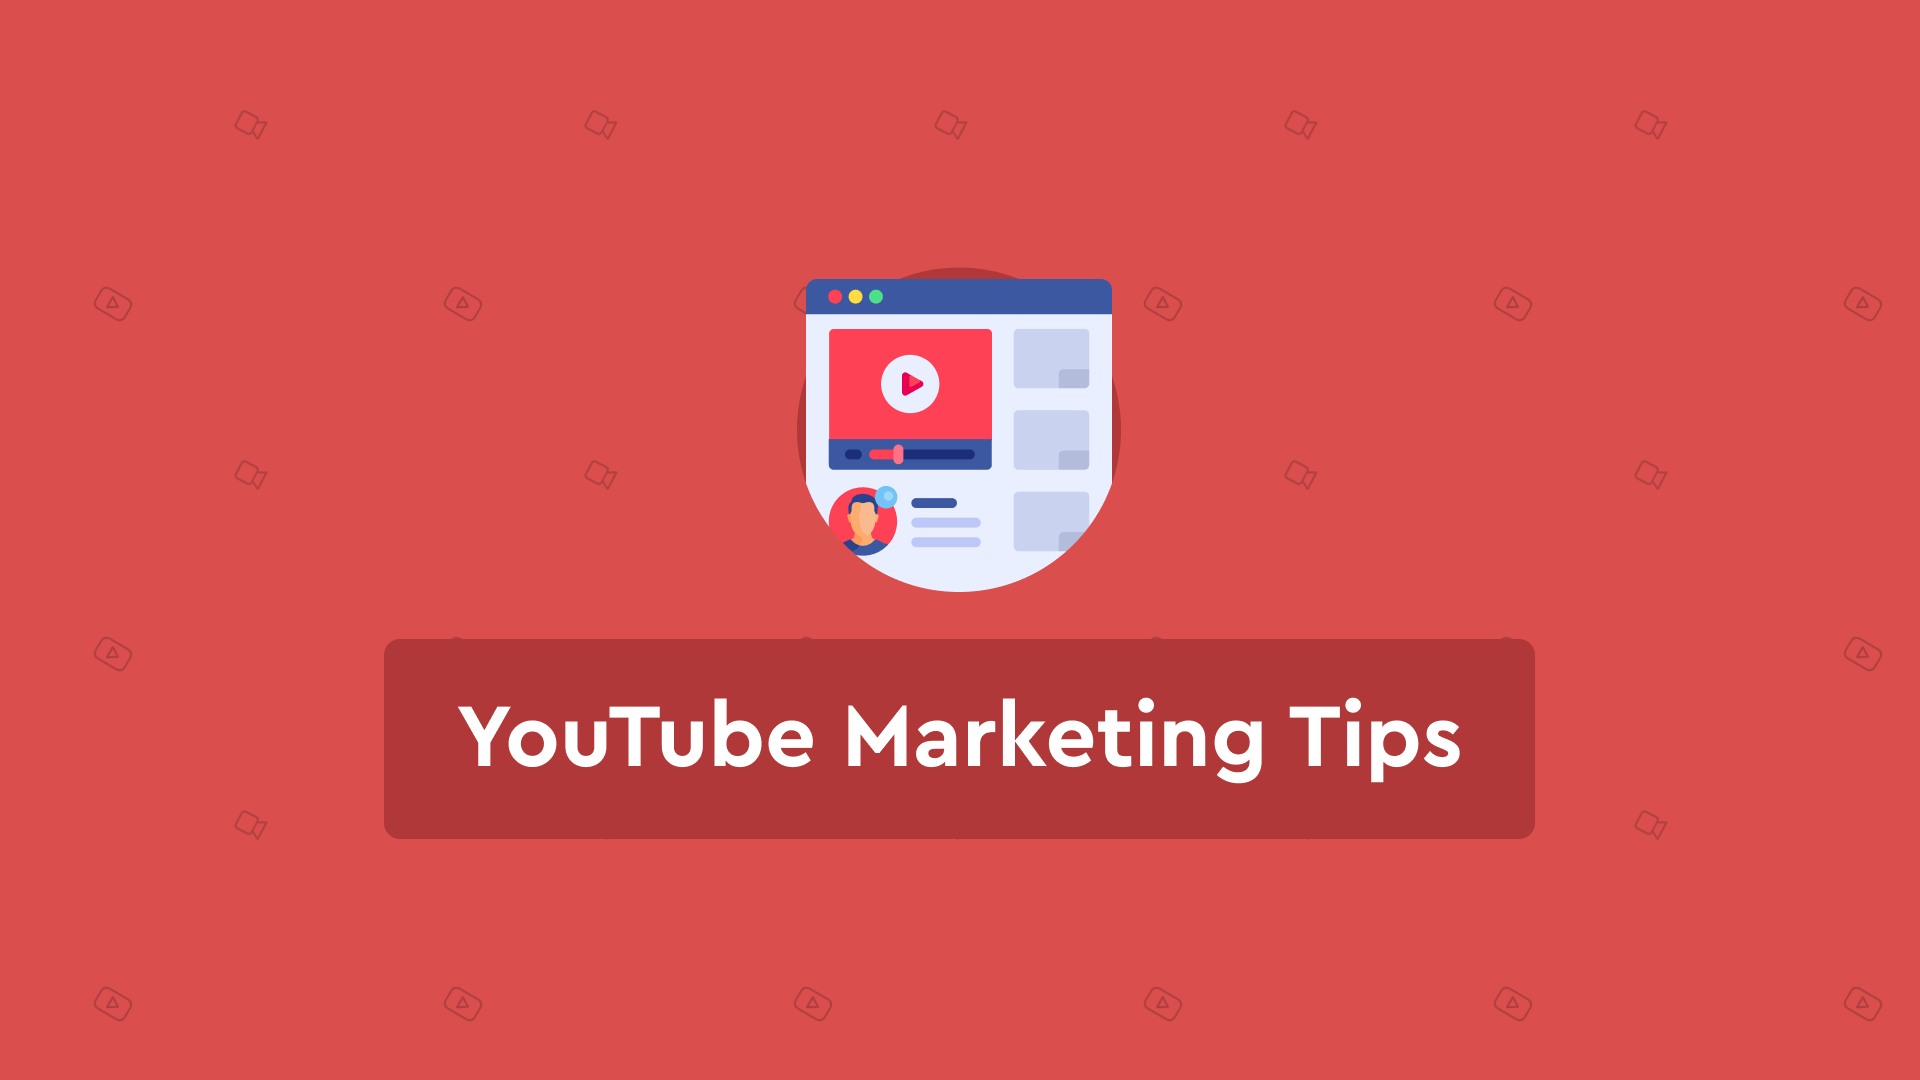 Even if you are not a YouTube content creator, a knowledge of how best to promote any YouTube content you may have is...